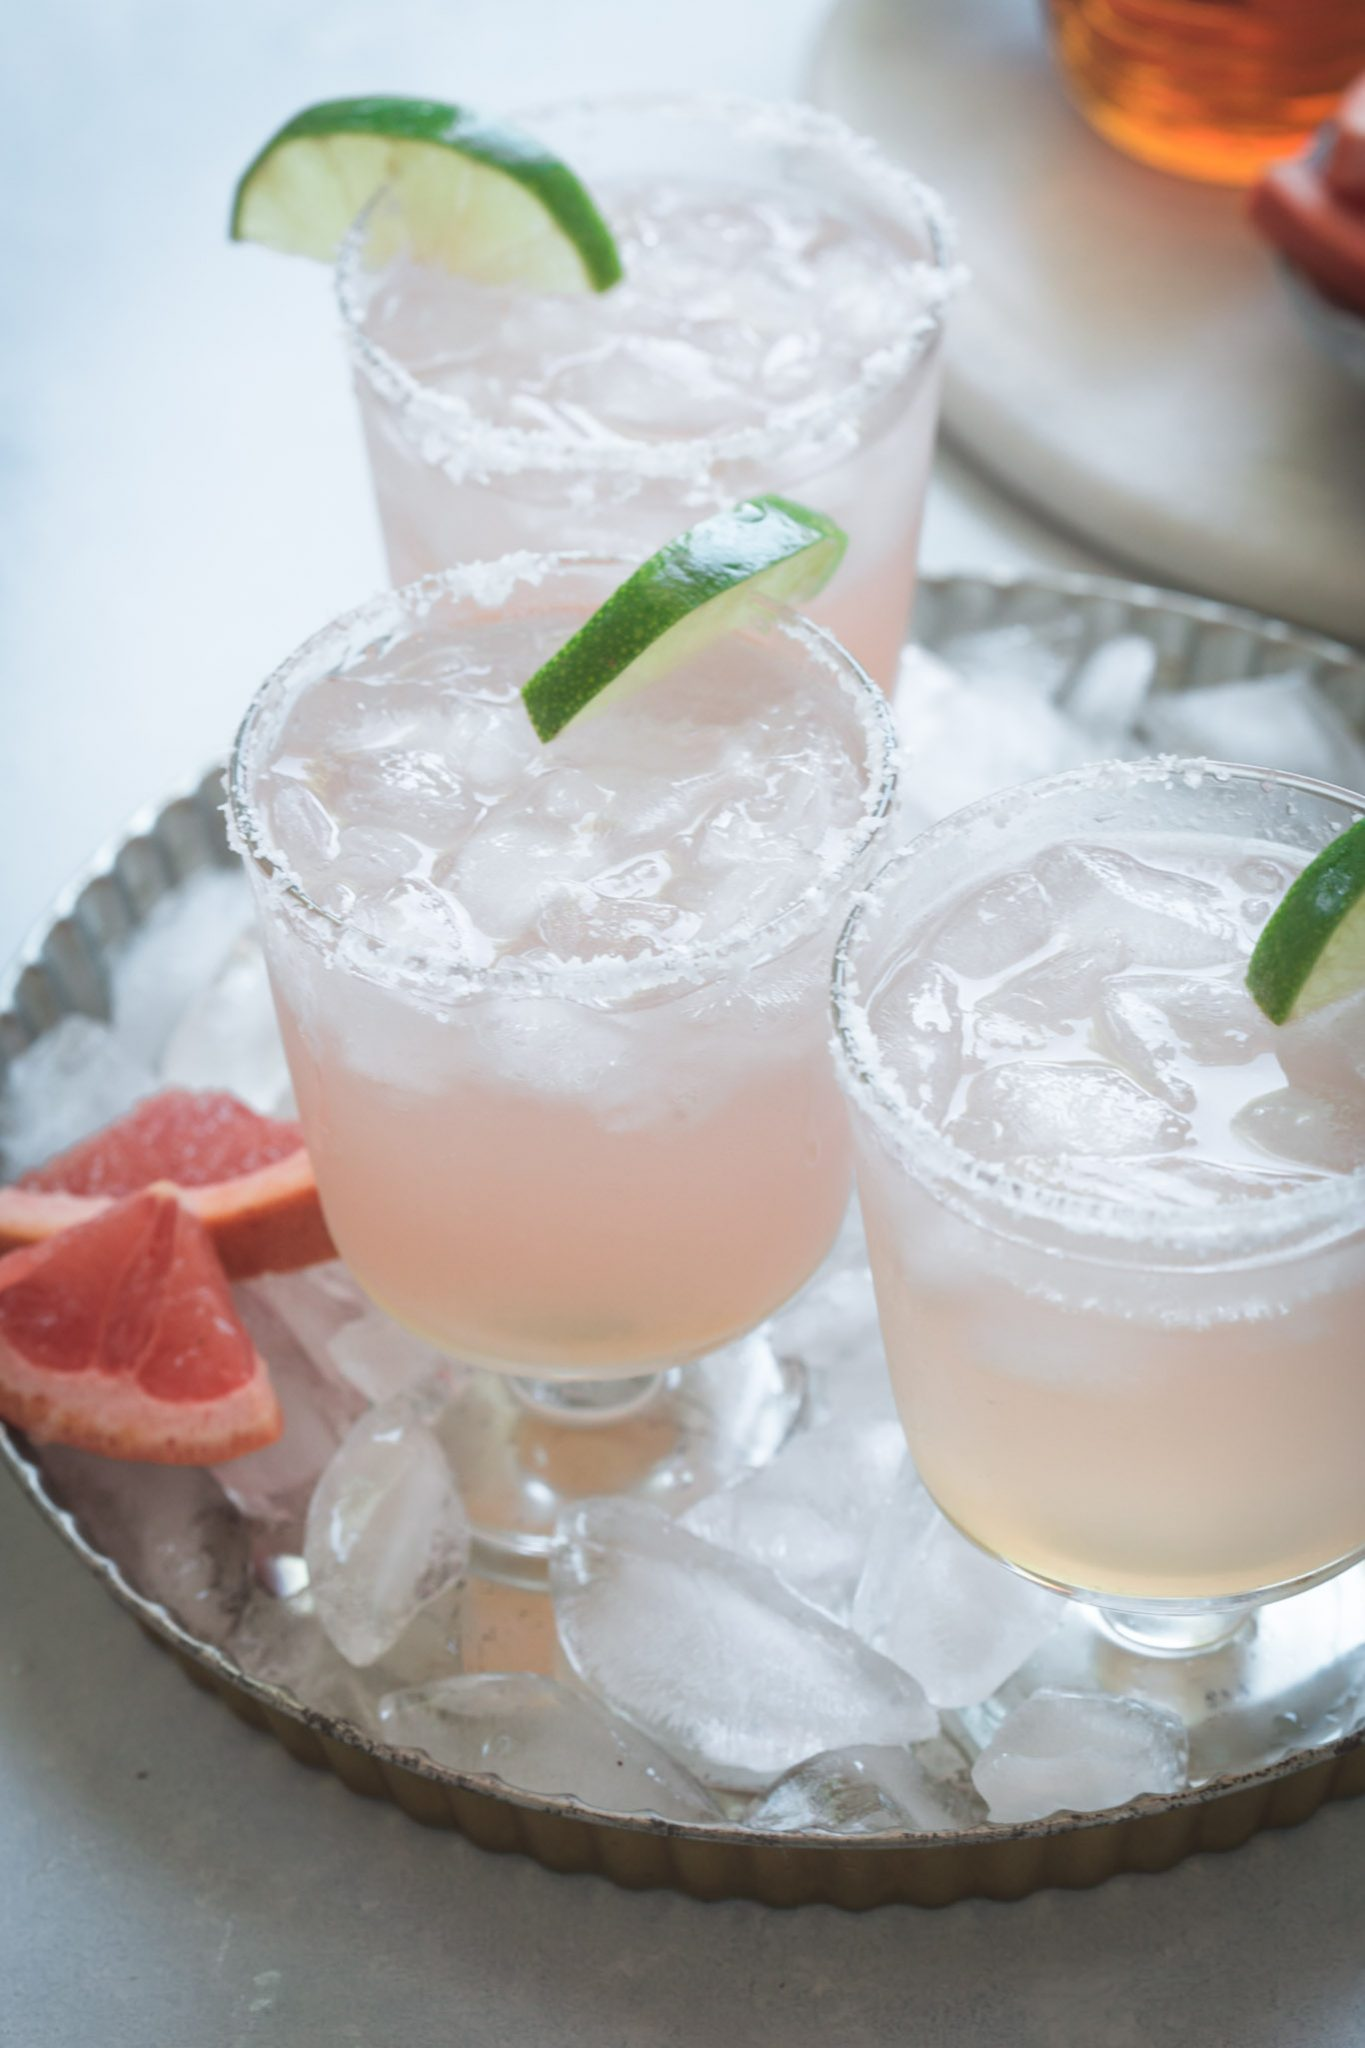 Three paloma cocktails on a serving tray with ice.